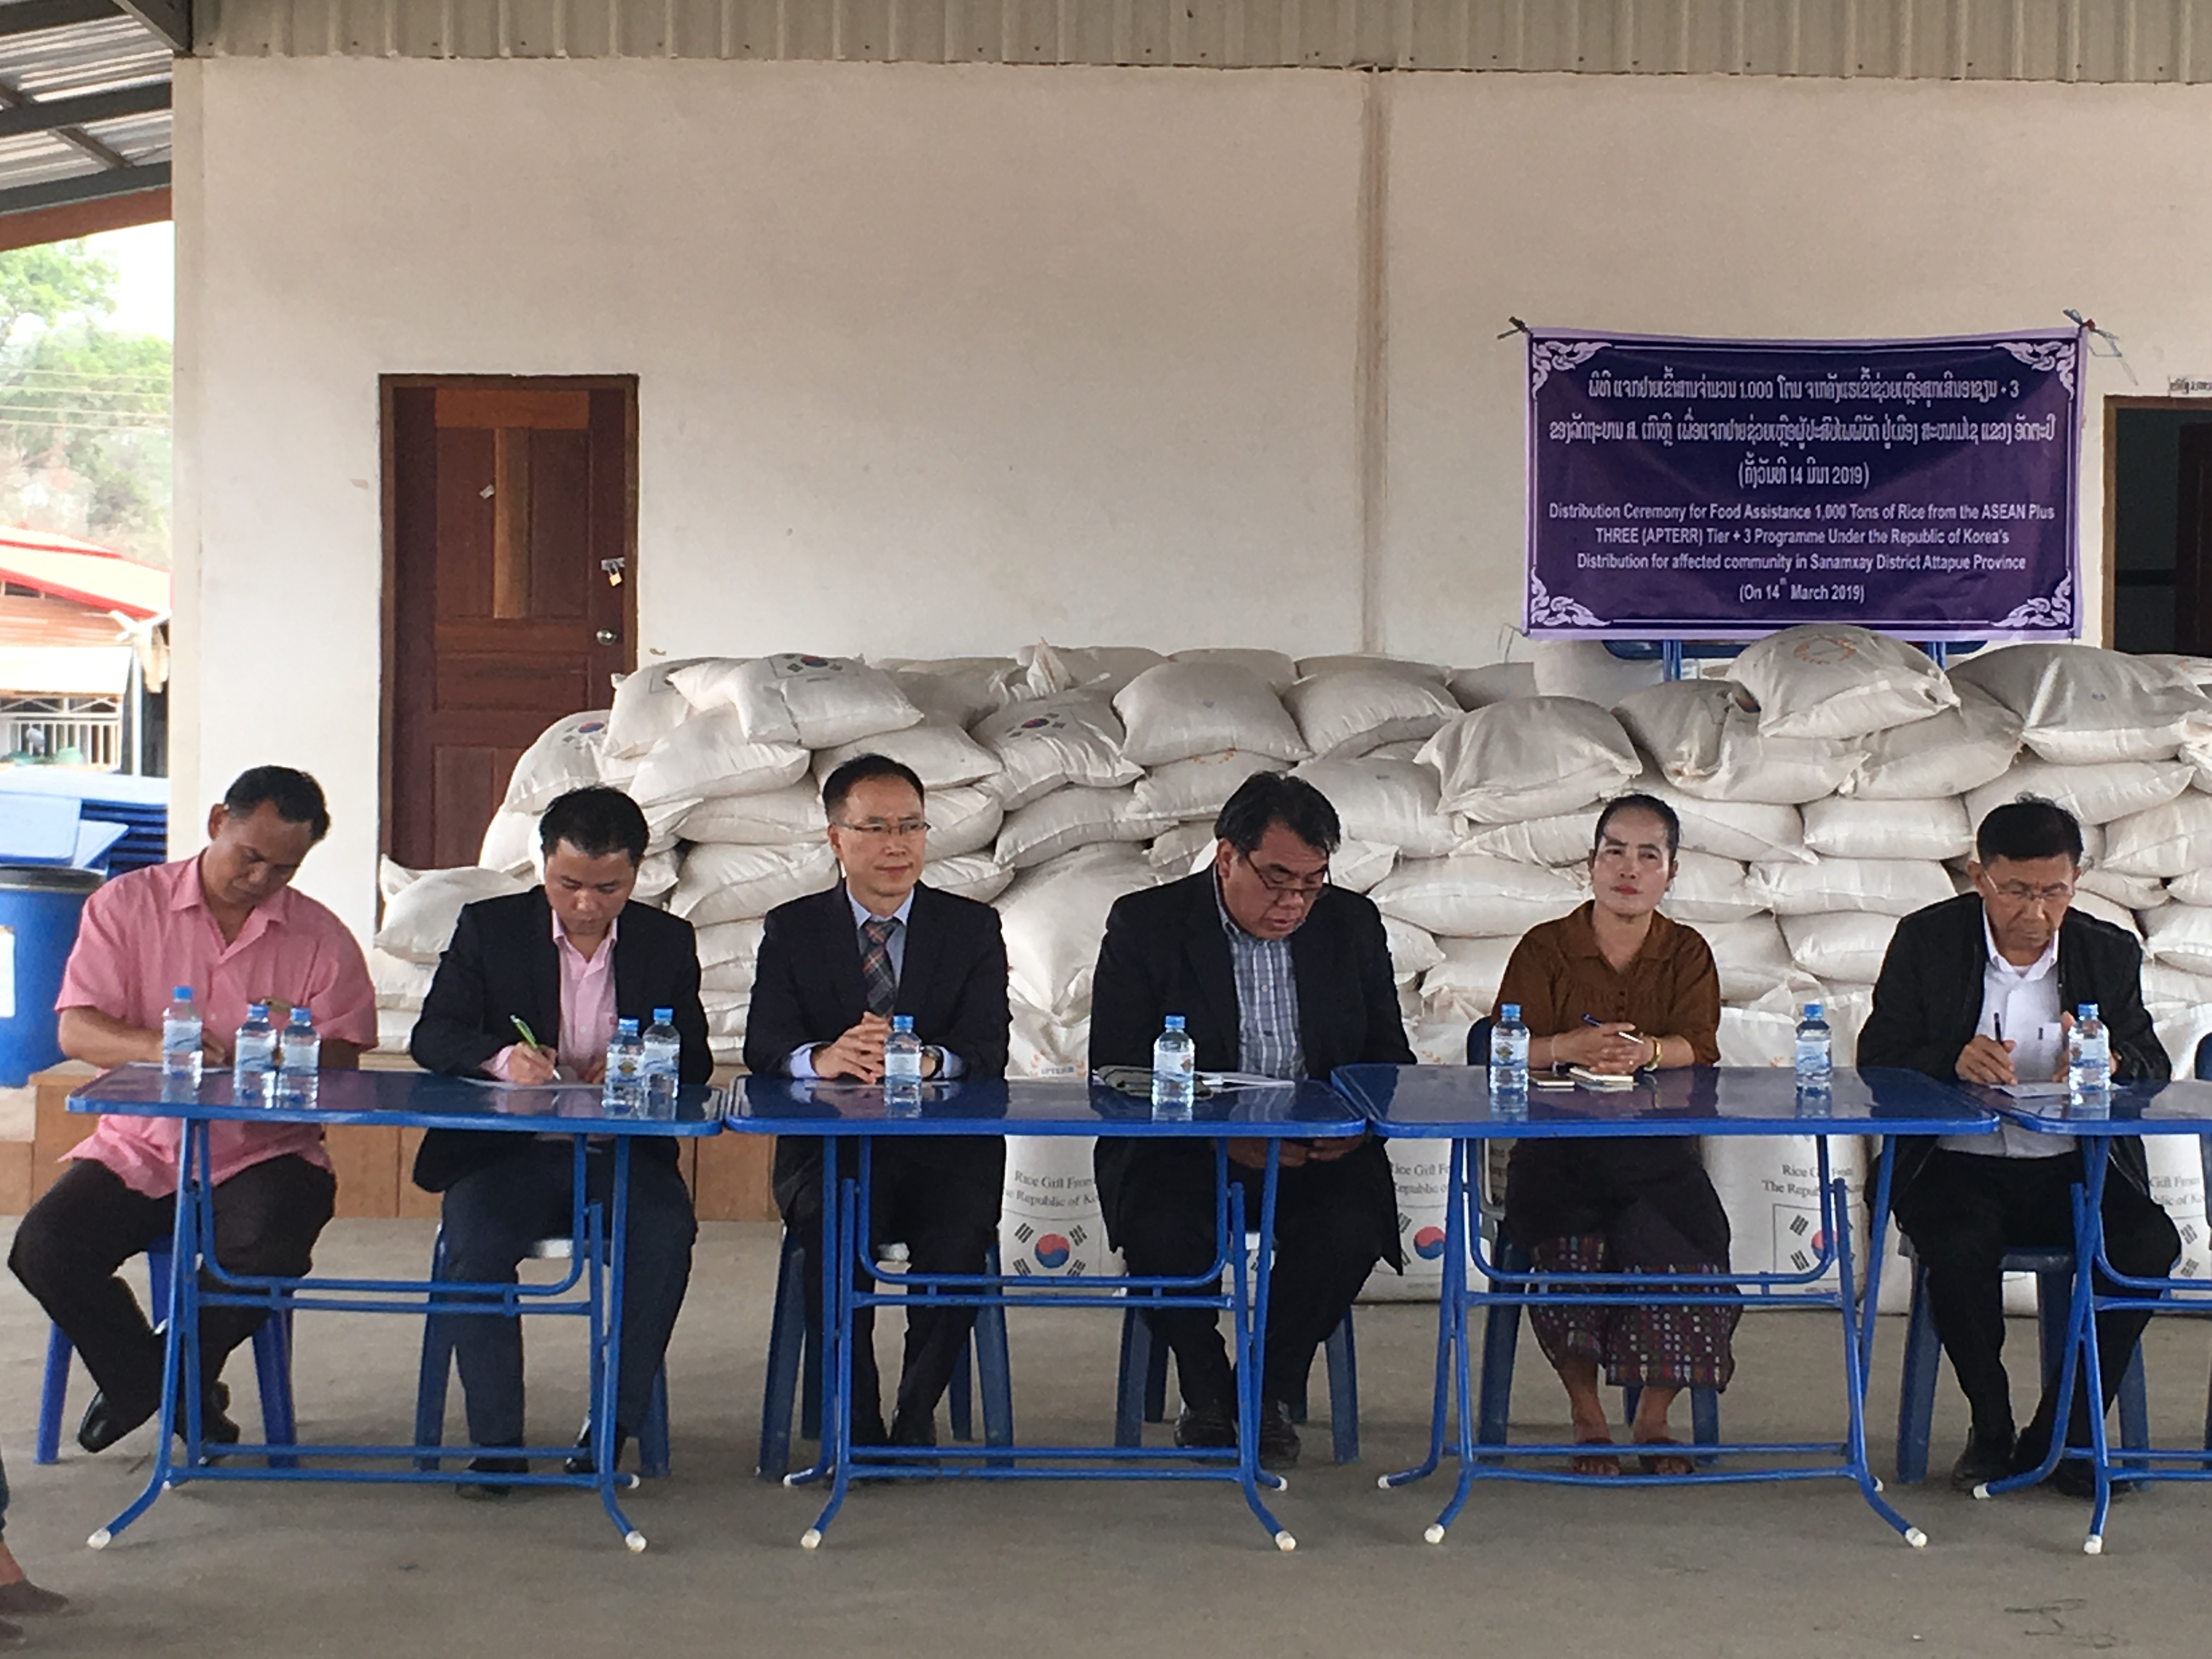 Distribution of Korea's 1,000-MT Rice to Flood-Effected People in